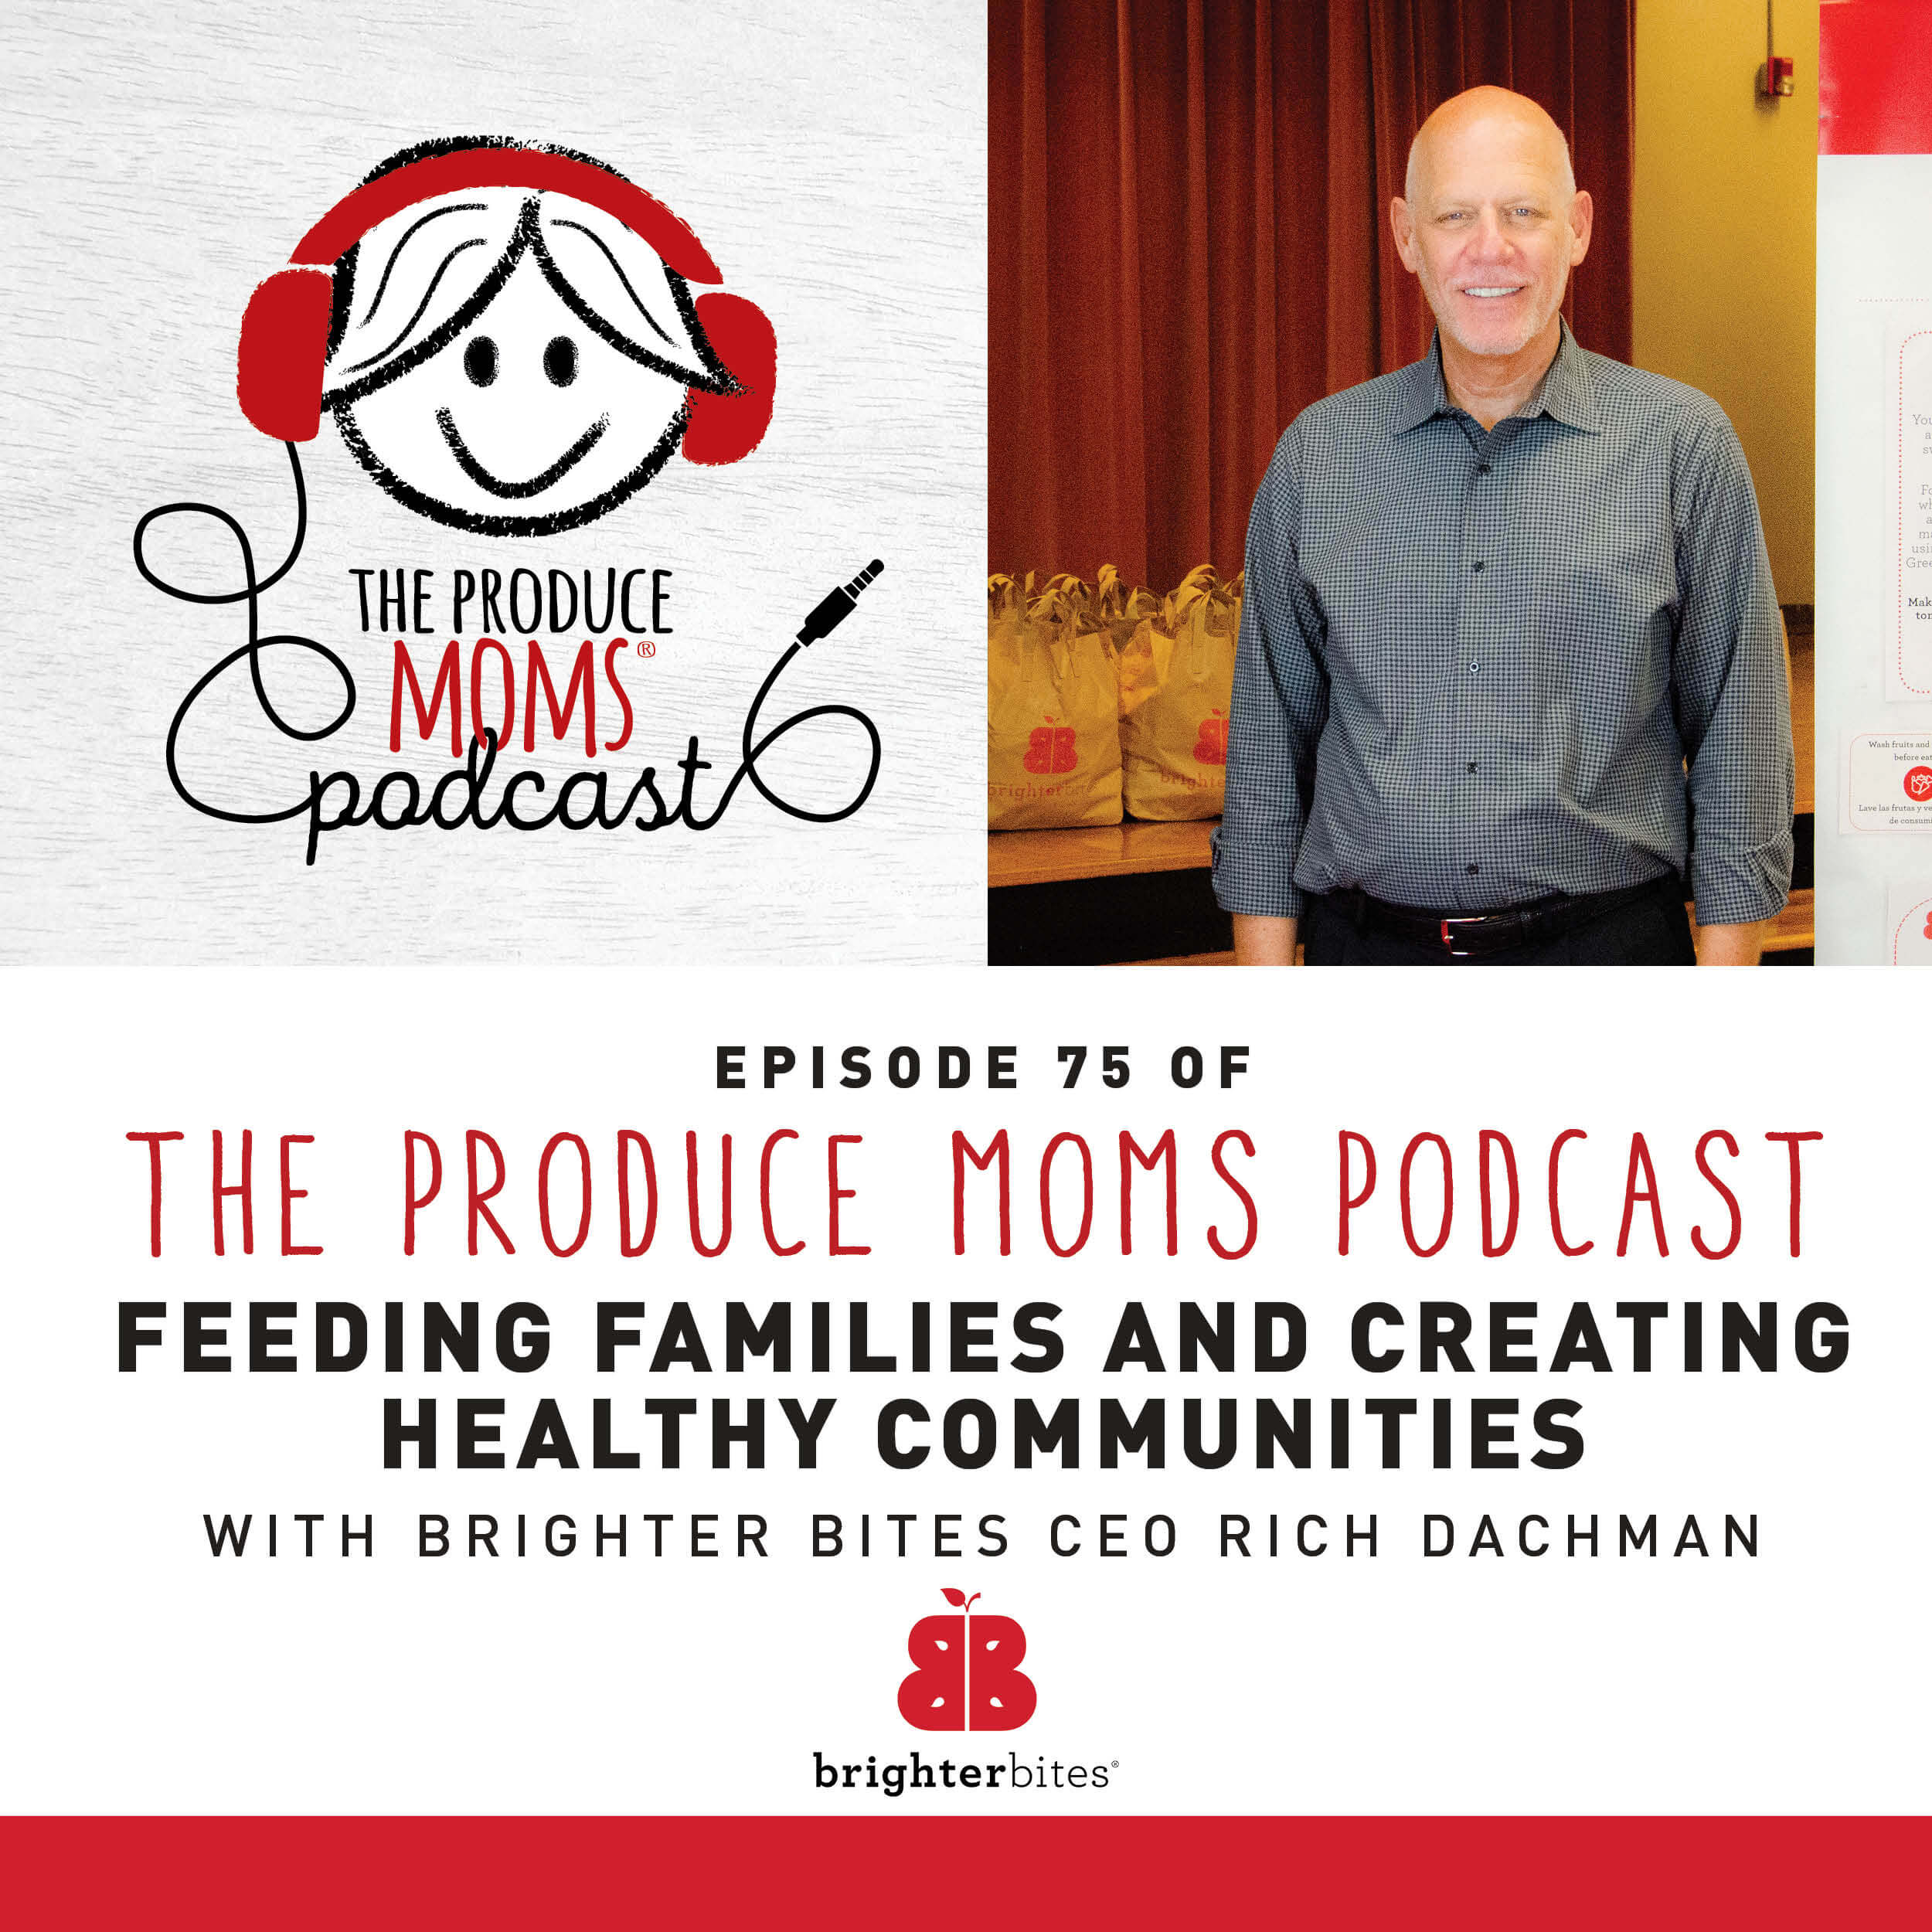 Episode 75: Feeding Families and Creating Healthy Communities with Brighter Bites CEO Rich Dachman